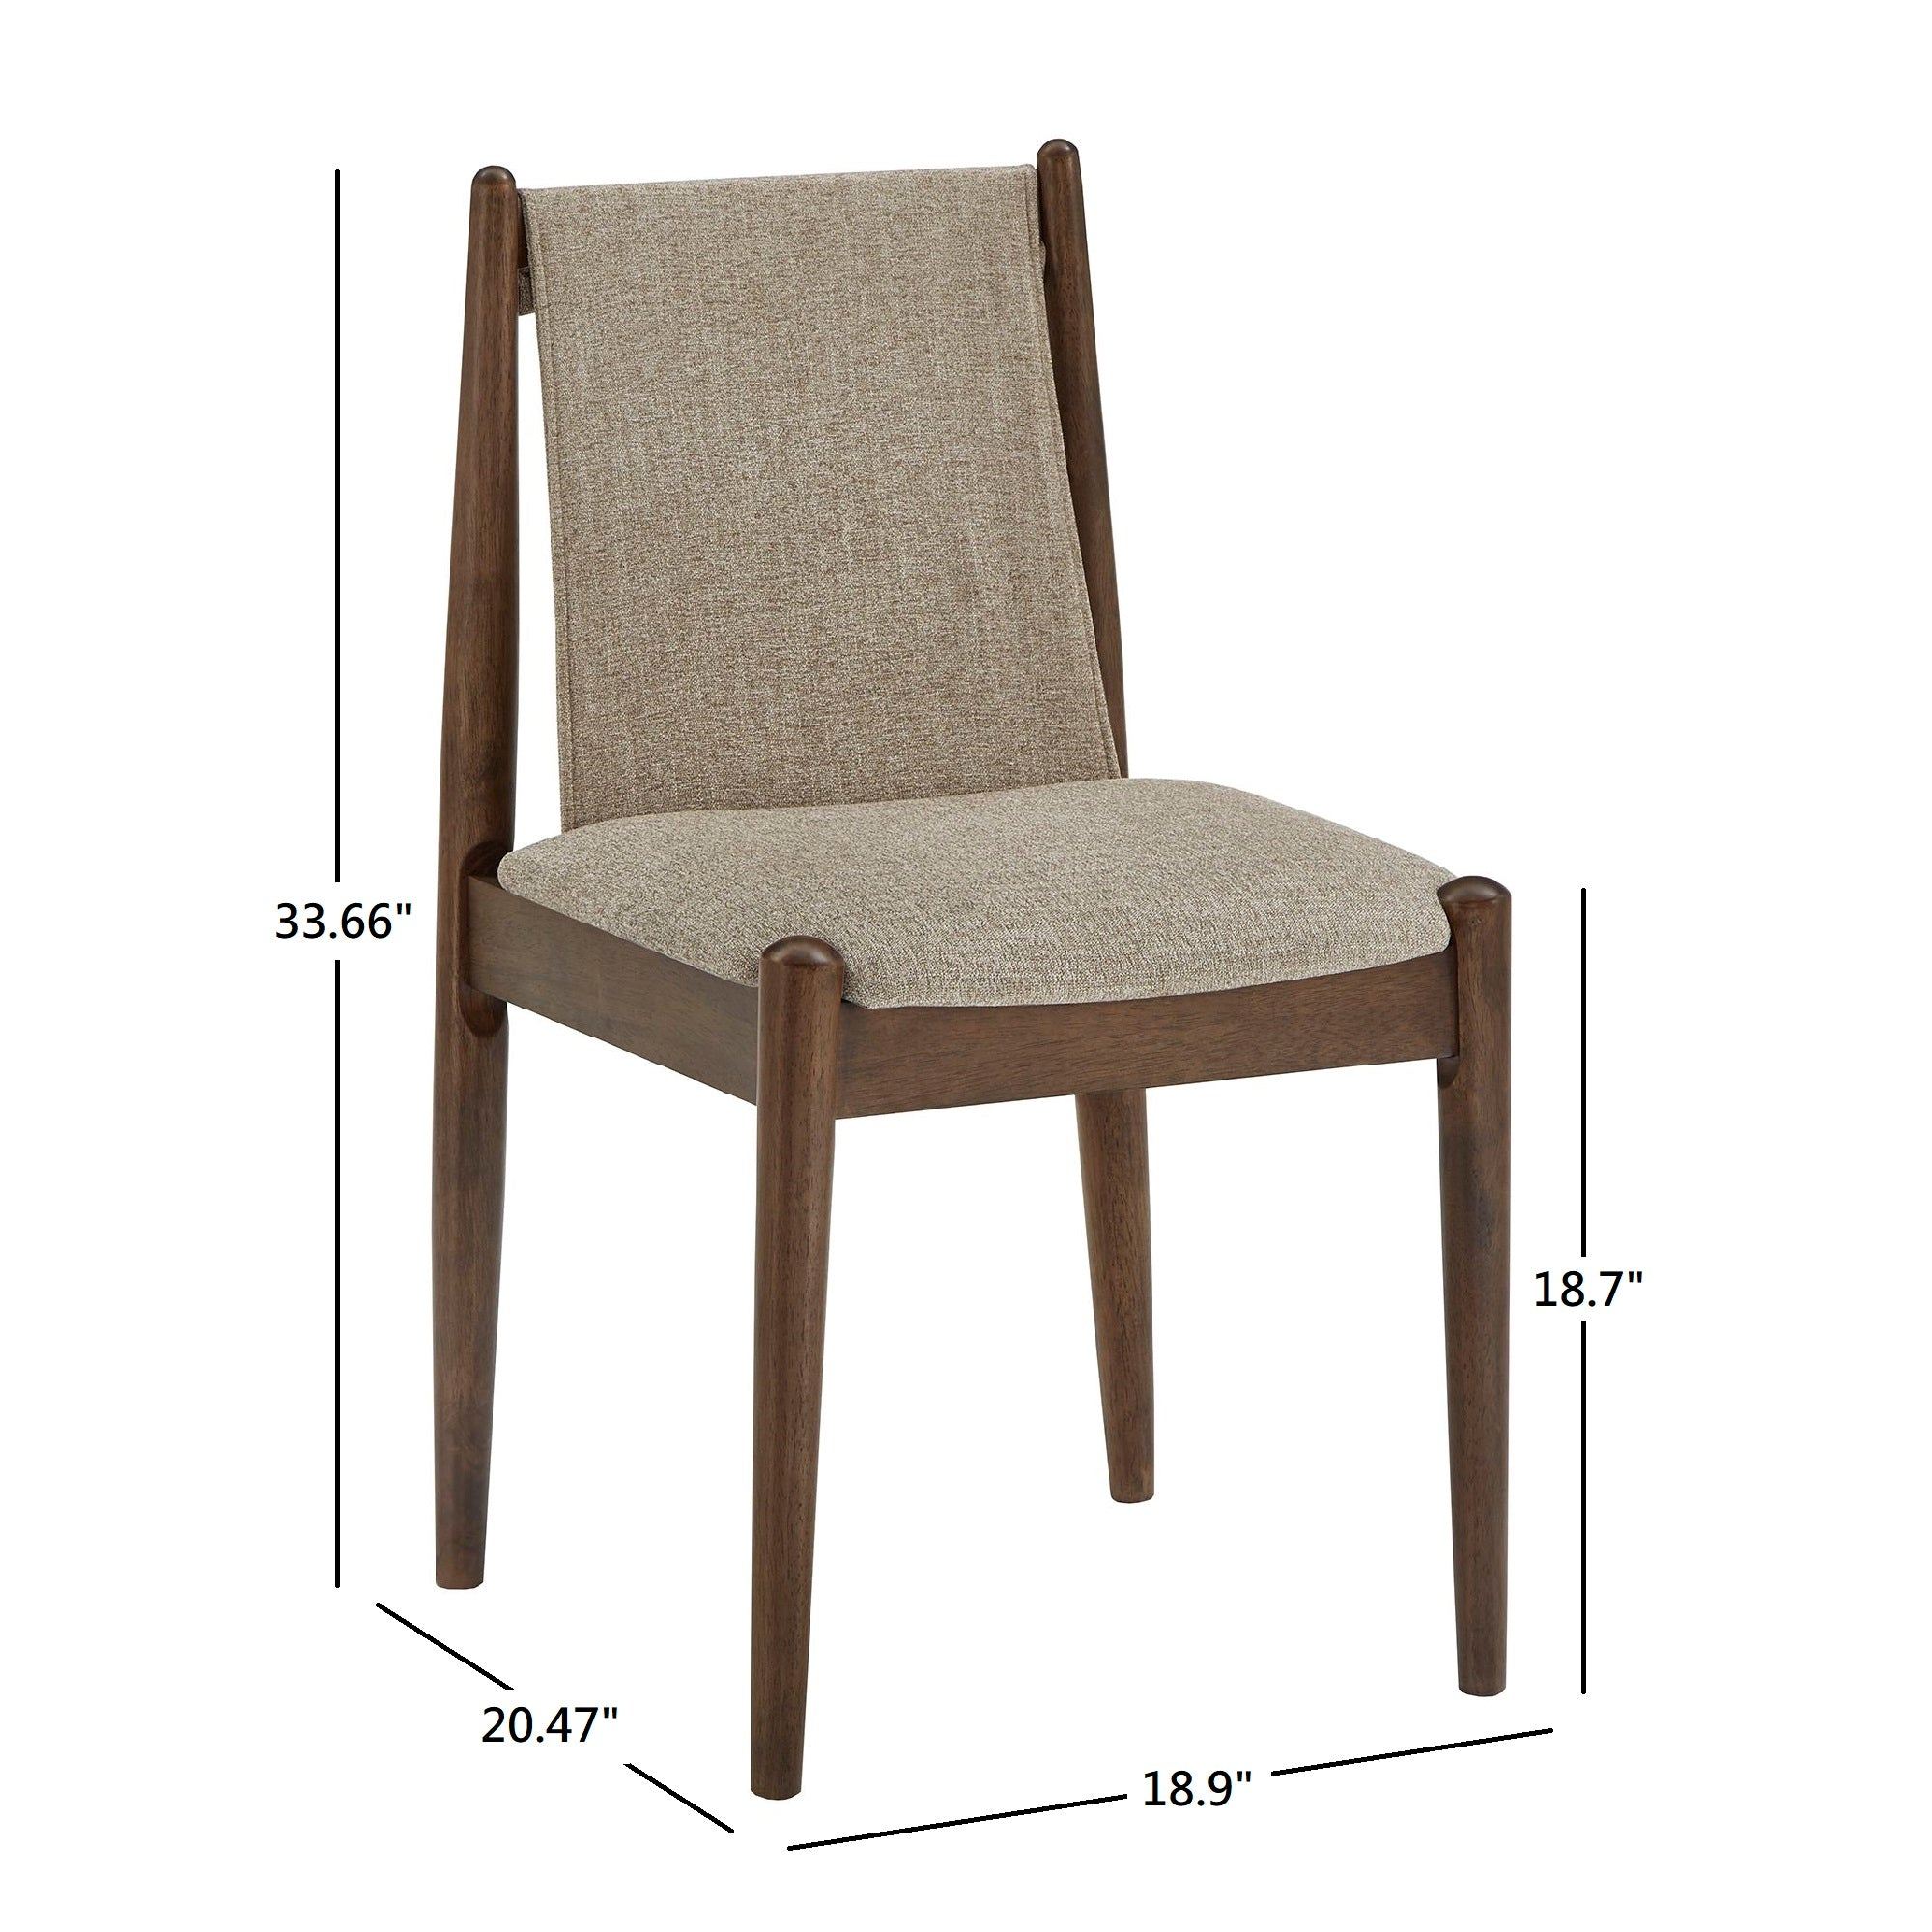 Walnut Finish Cocoa Fabric Dining Chair (Set of 2)